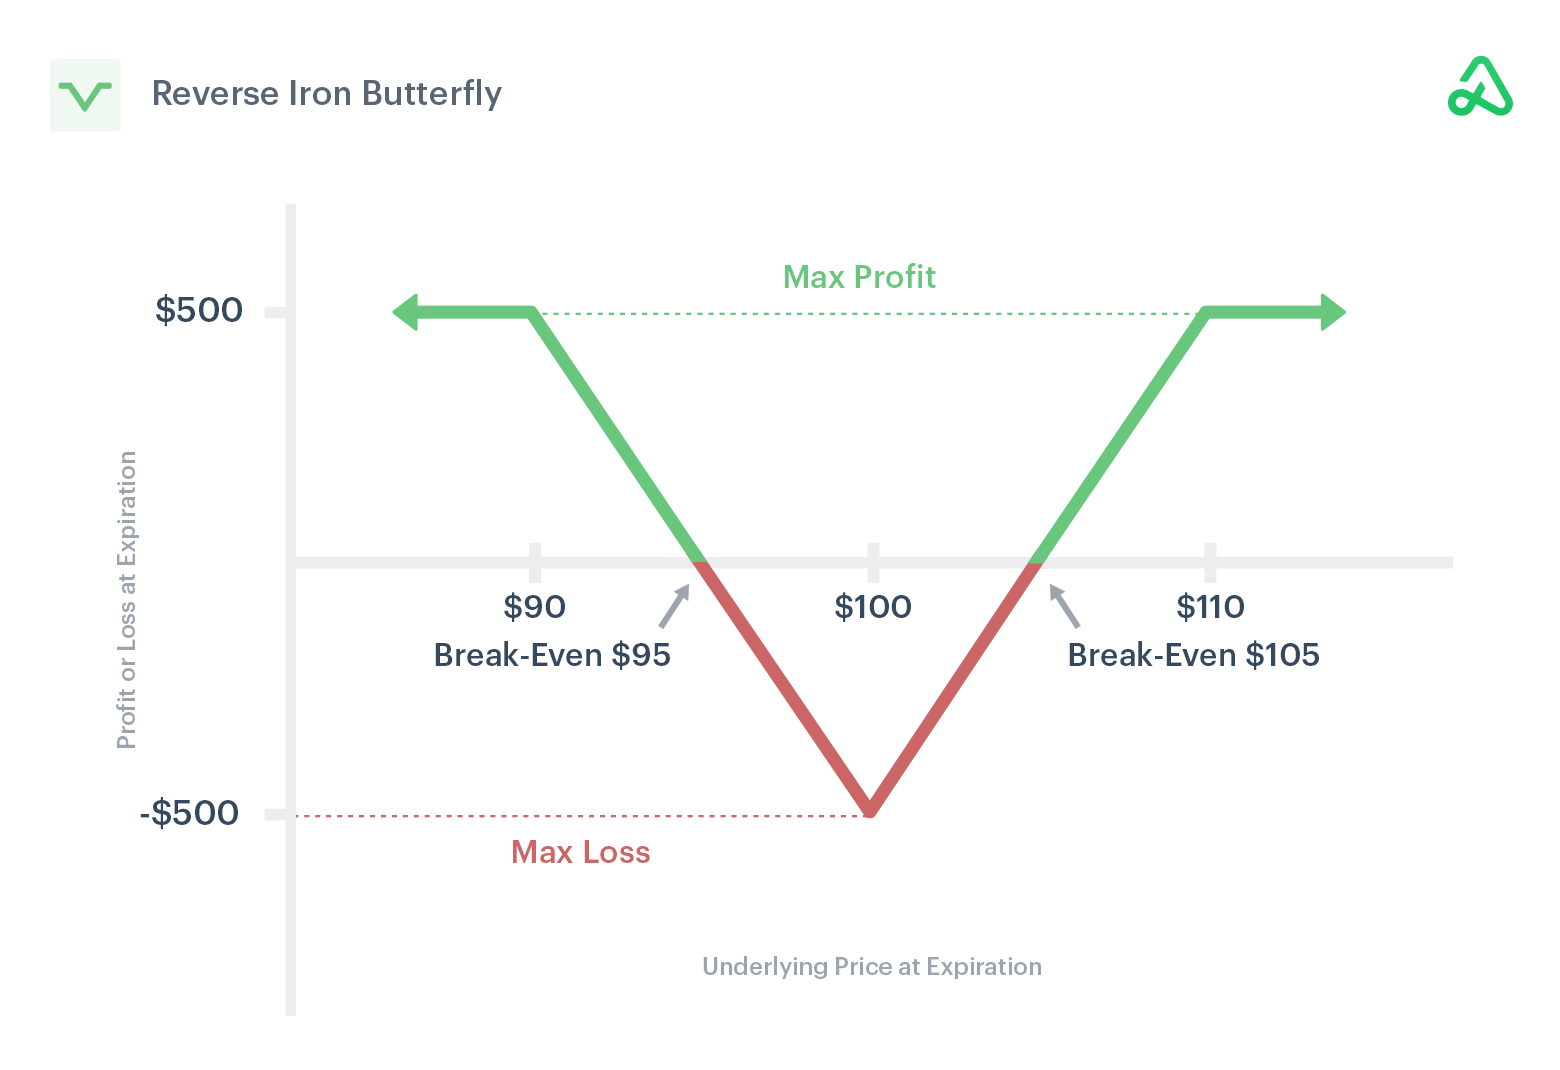 Image of reverse iron butterfly payoff diagram showing max profit, max loss, and break-even points